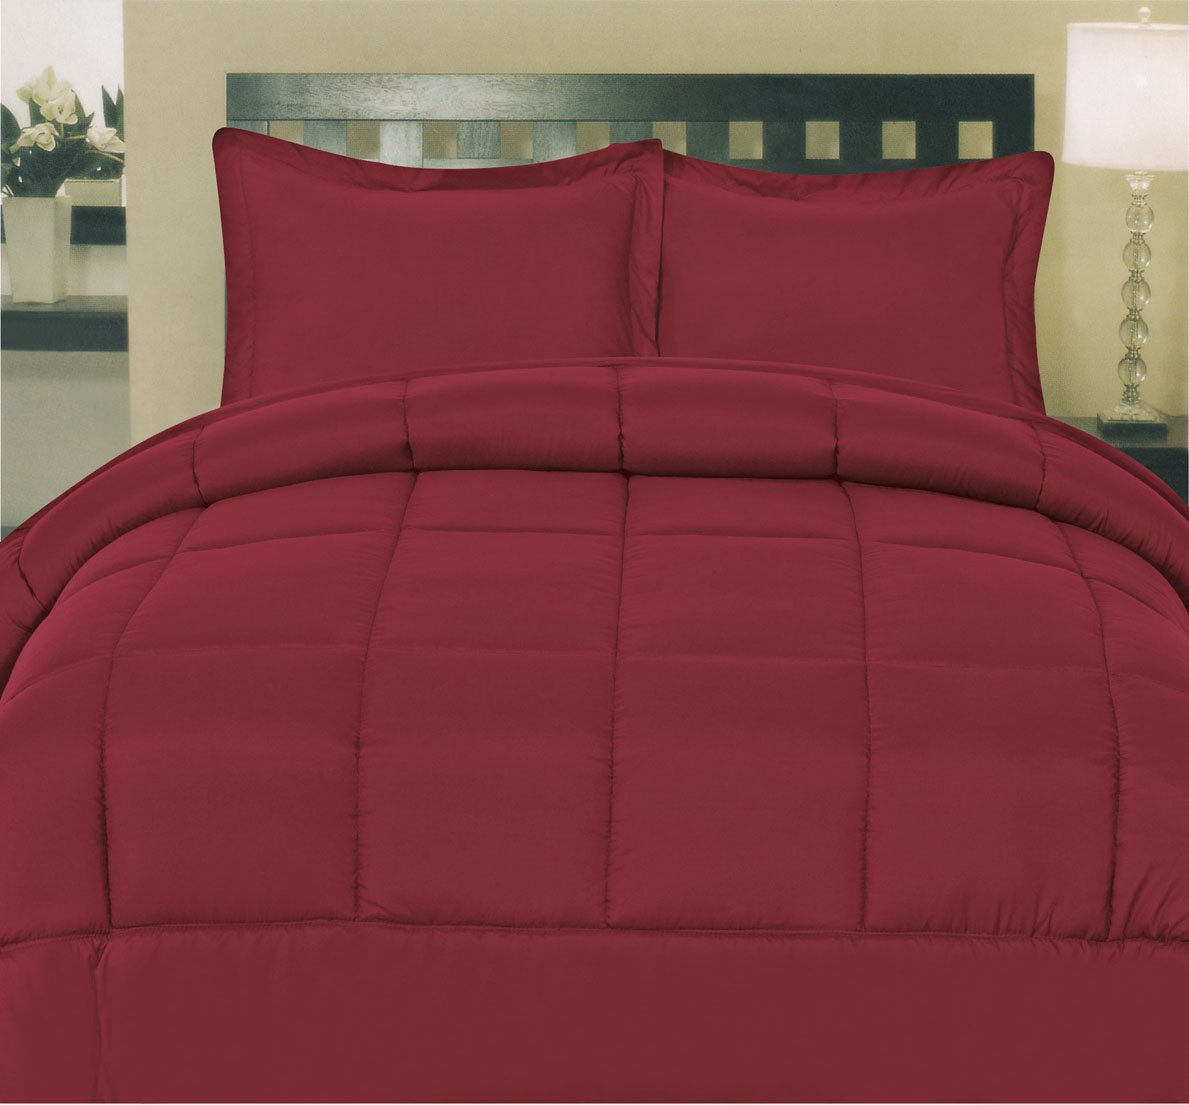 Sweet Home Collection White Goose Down Alternative Comforter, Queen, Burgundy